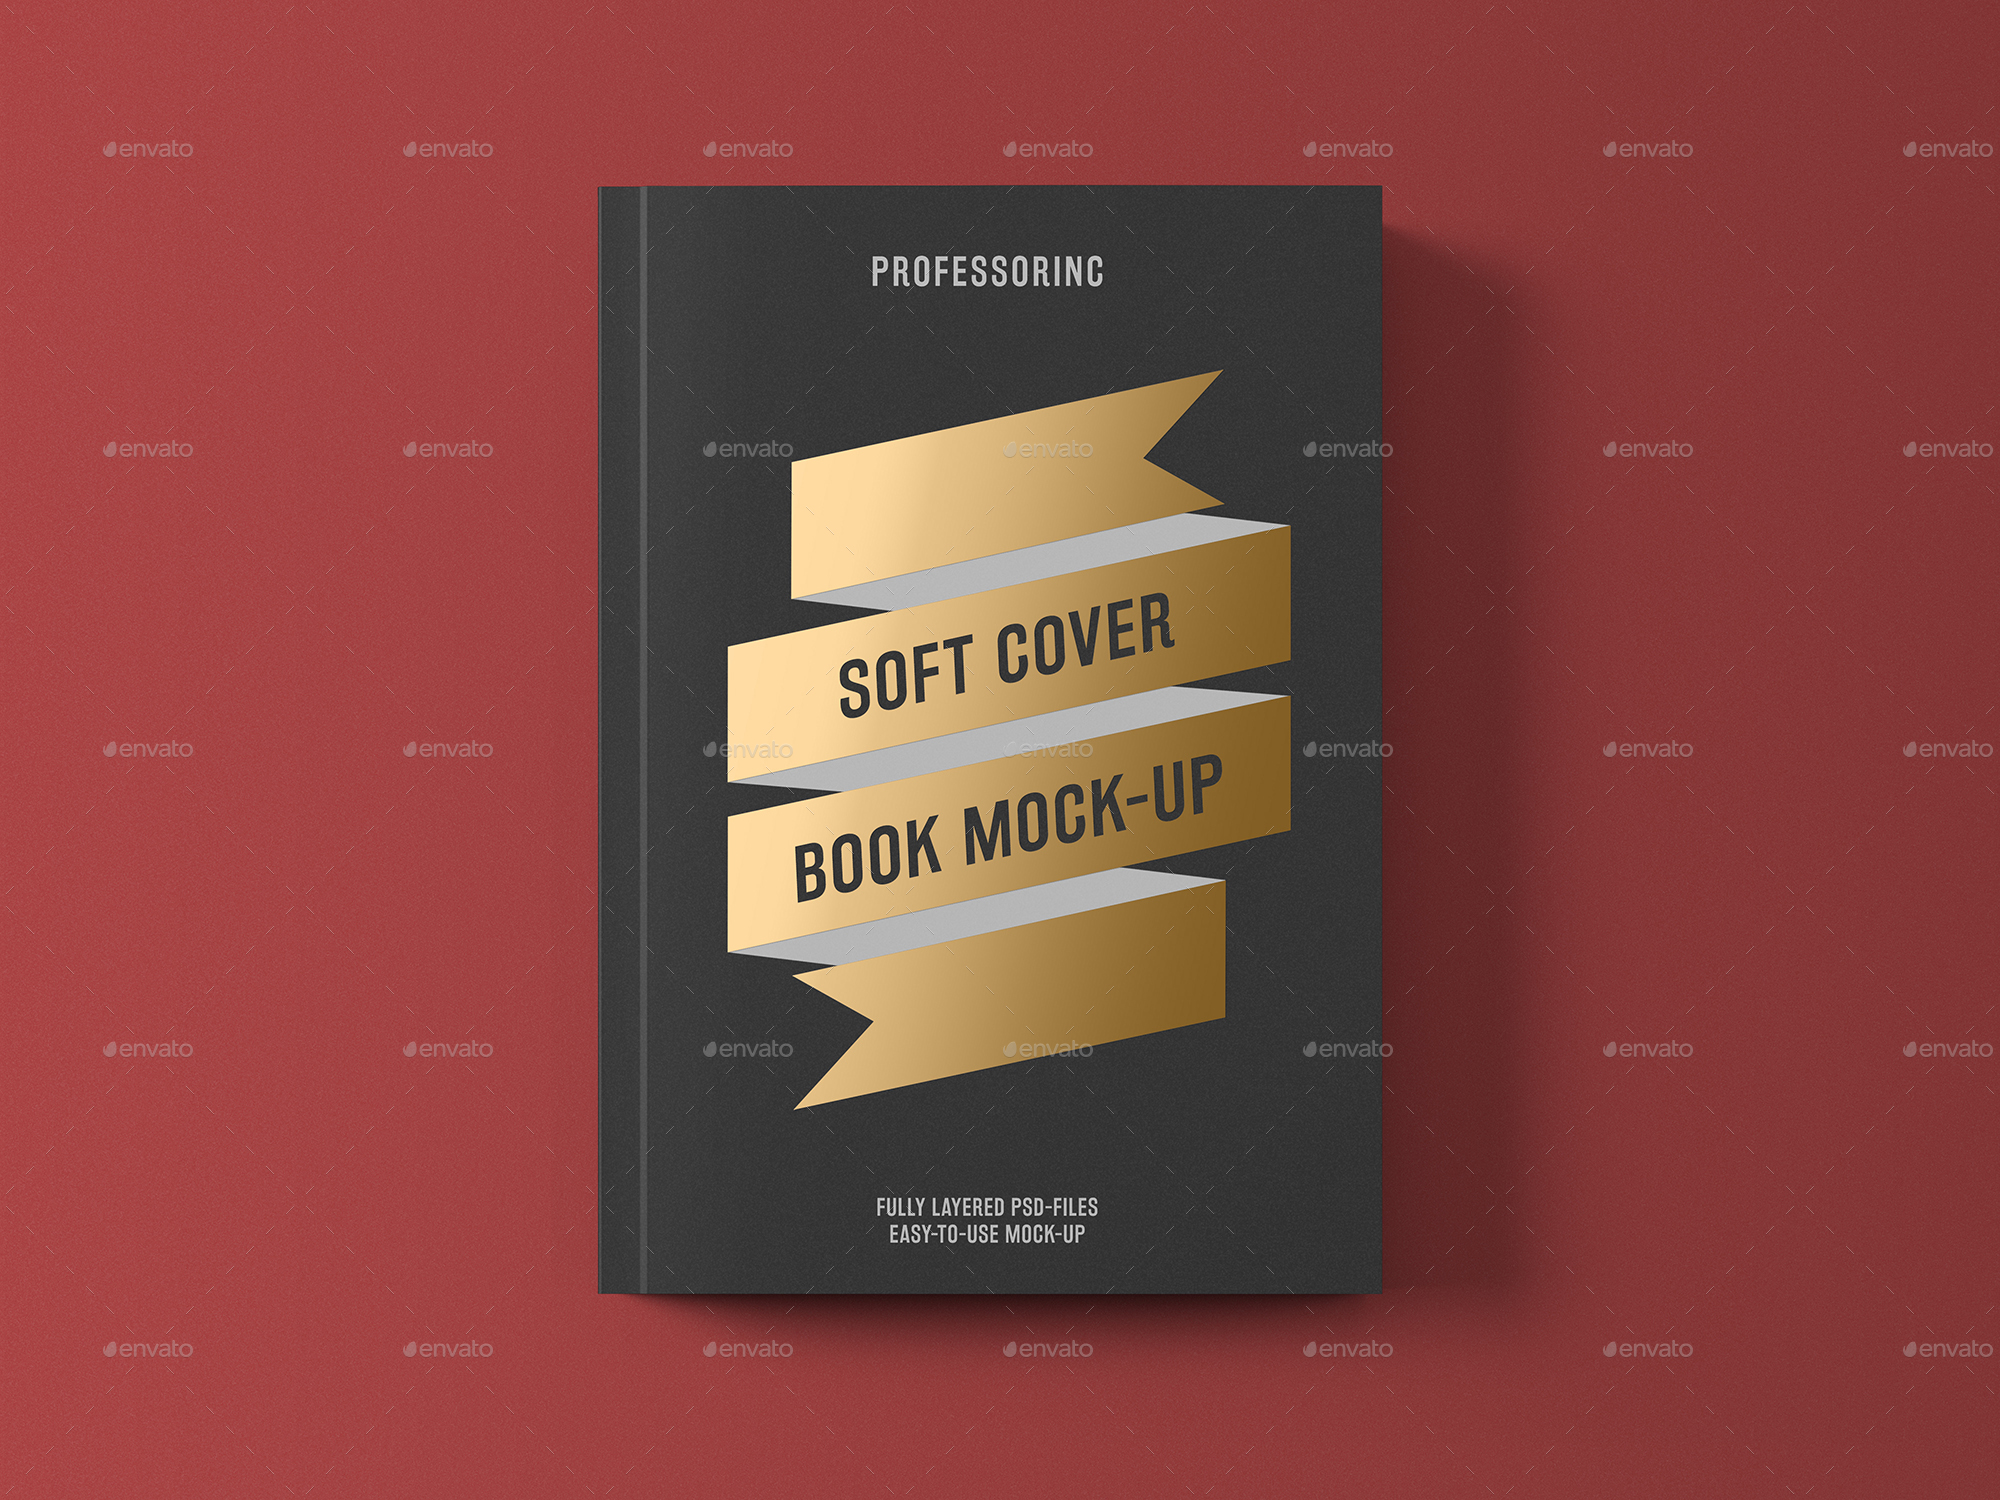 Foil Stamping Book Cover Diy : Soft cover book with foil stamping mock up by professorinc